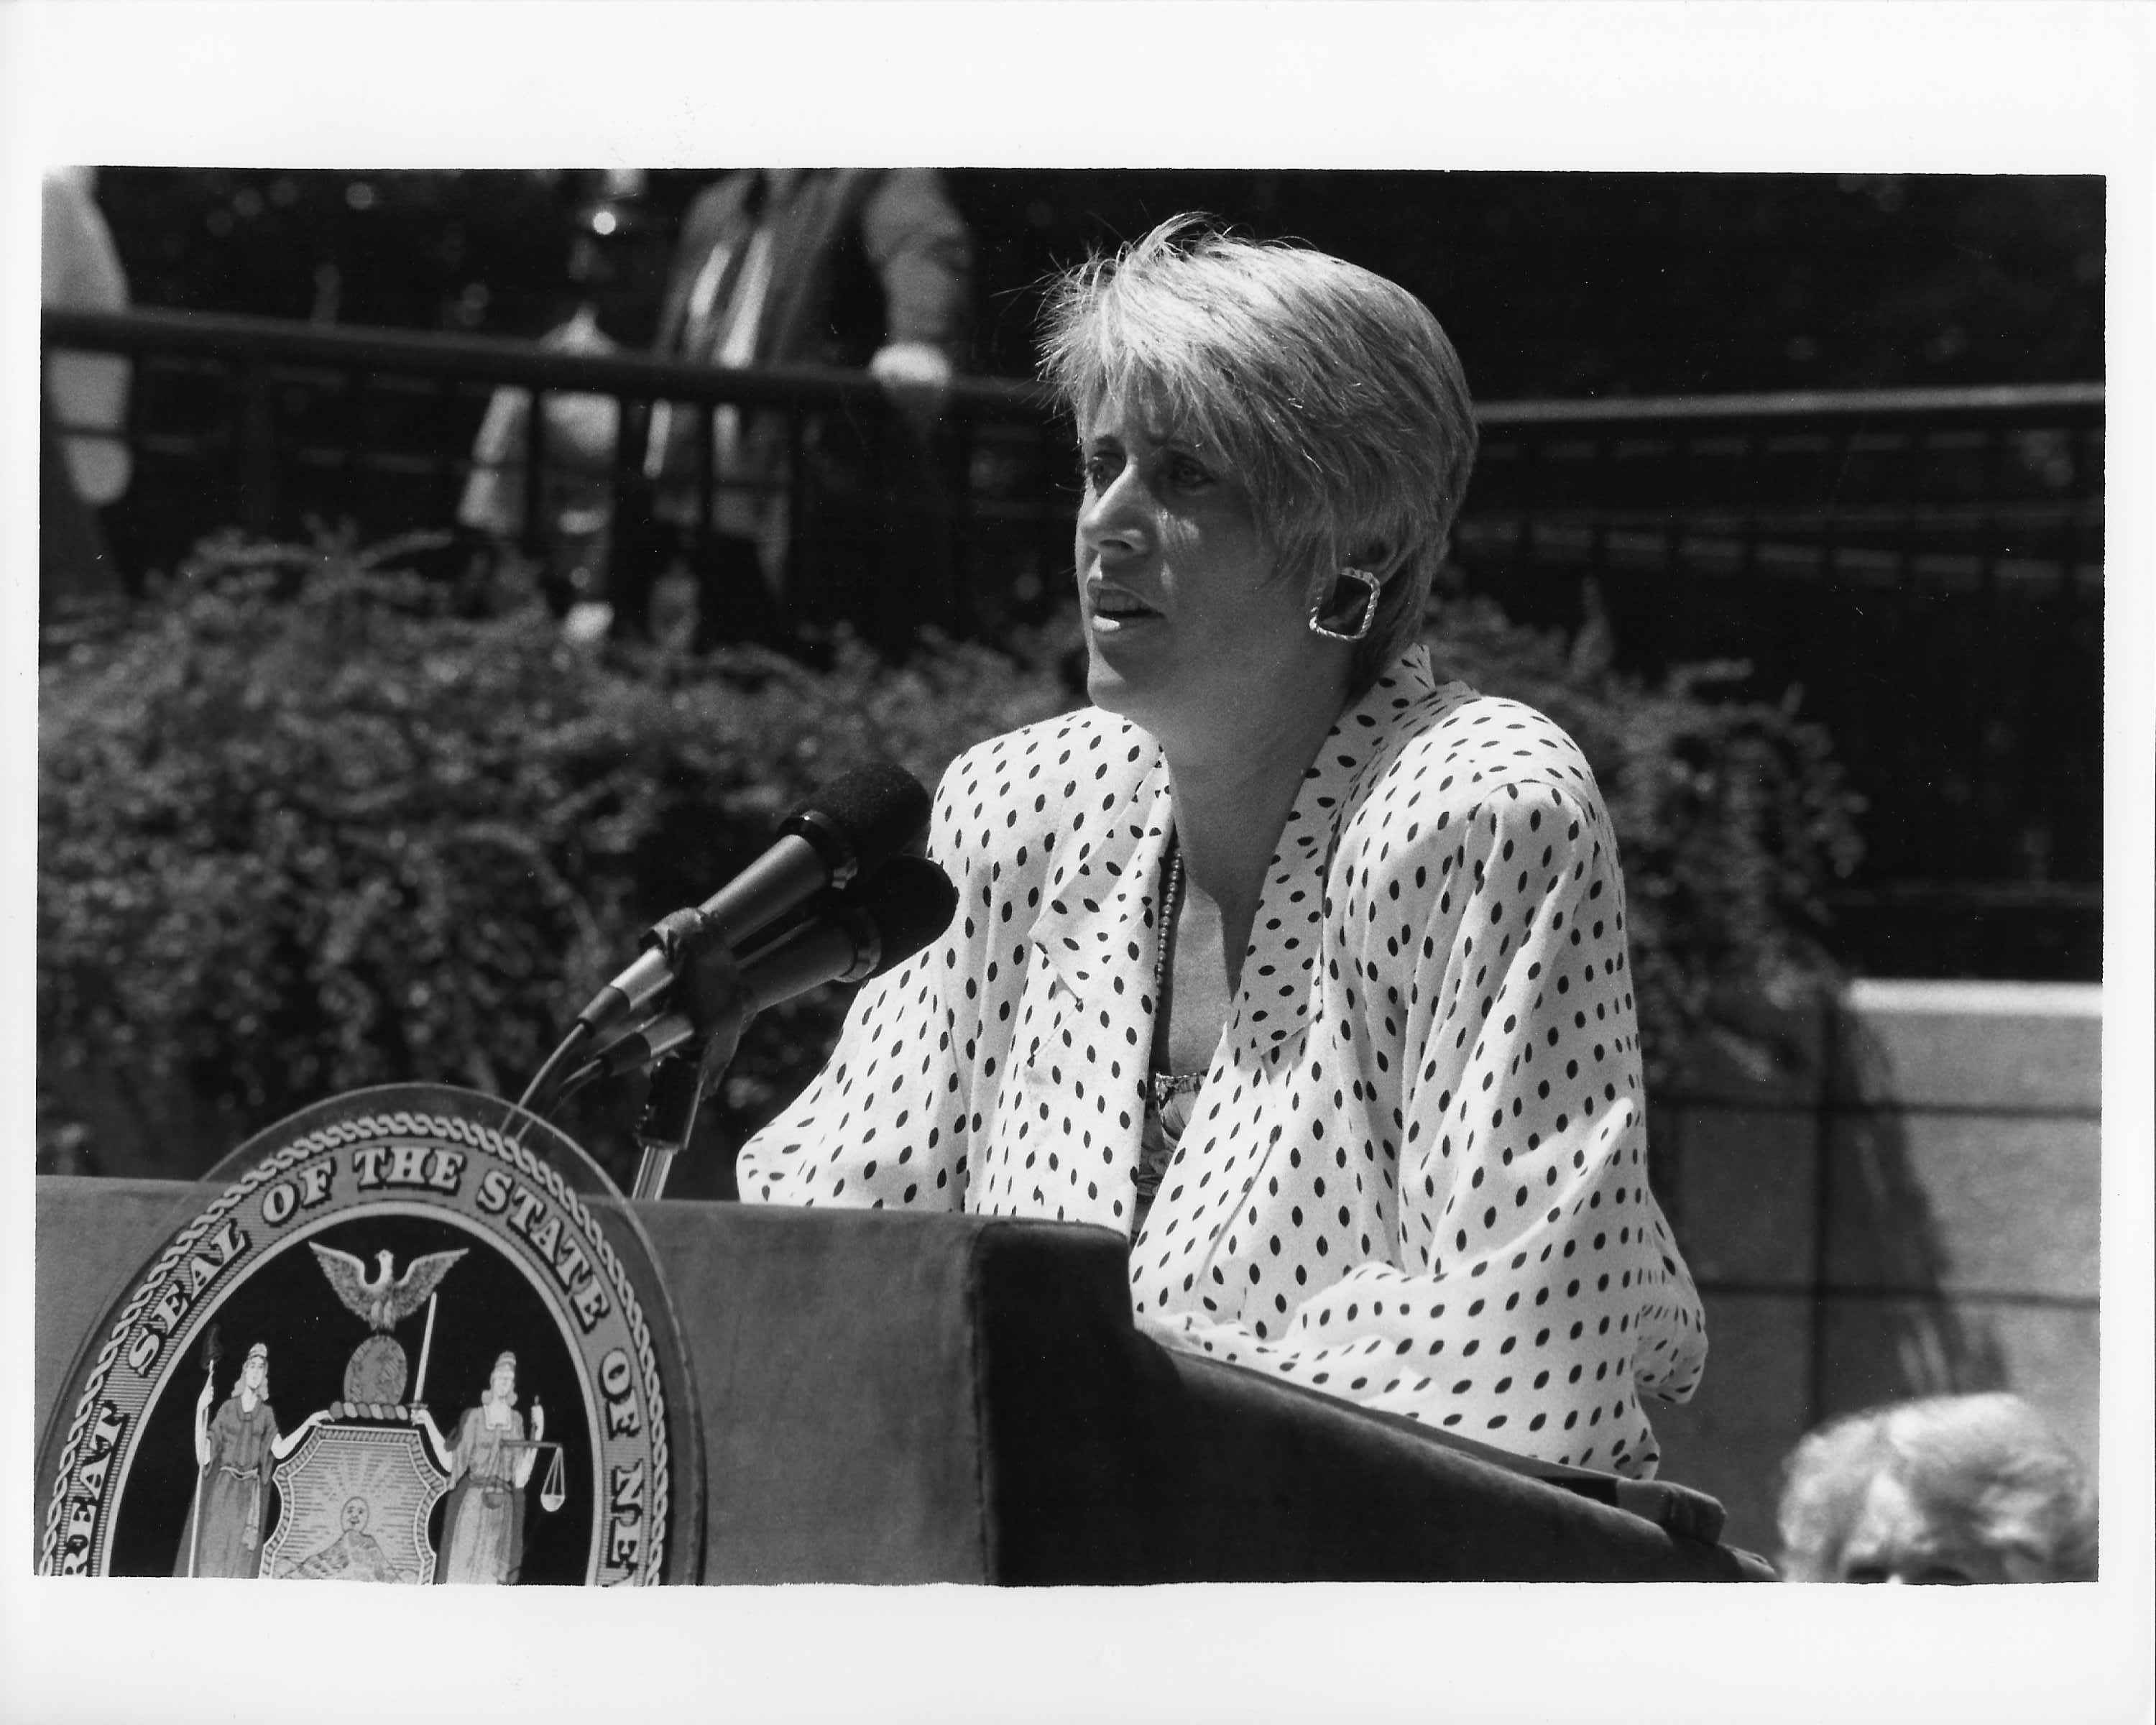 Mary Beth, Police memorial in Albany